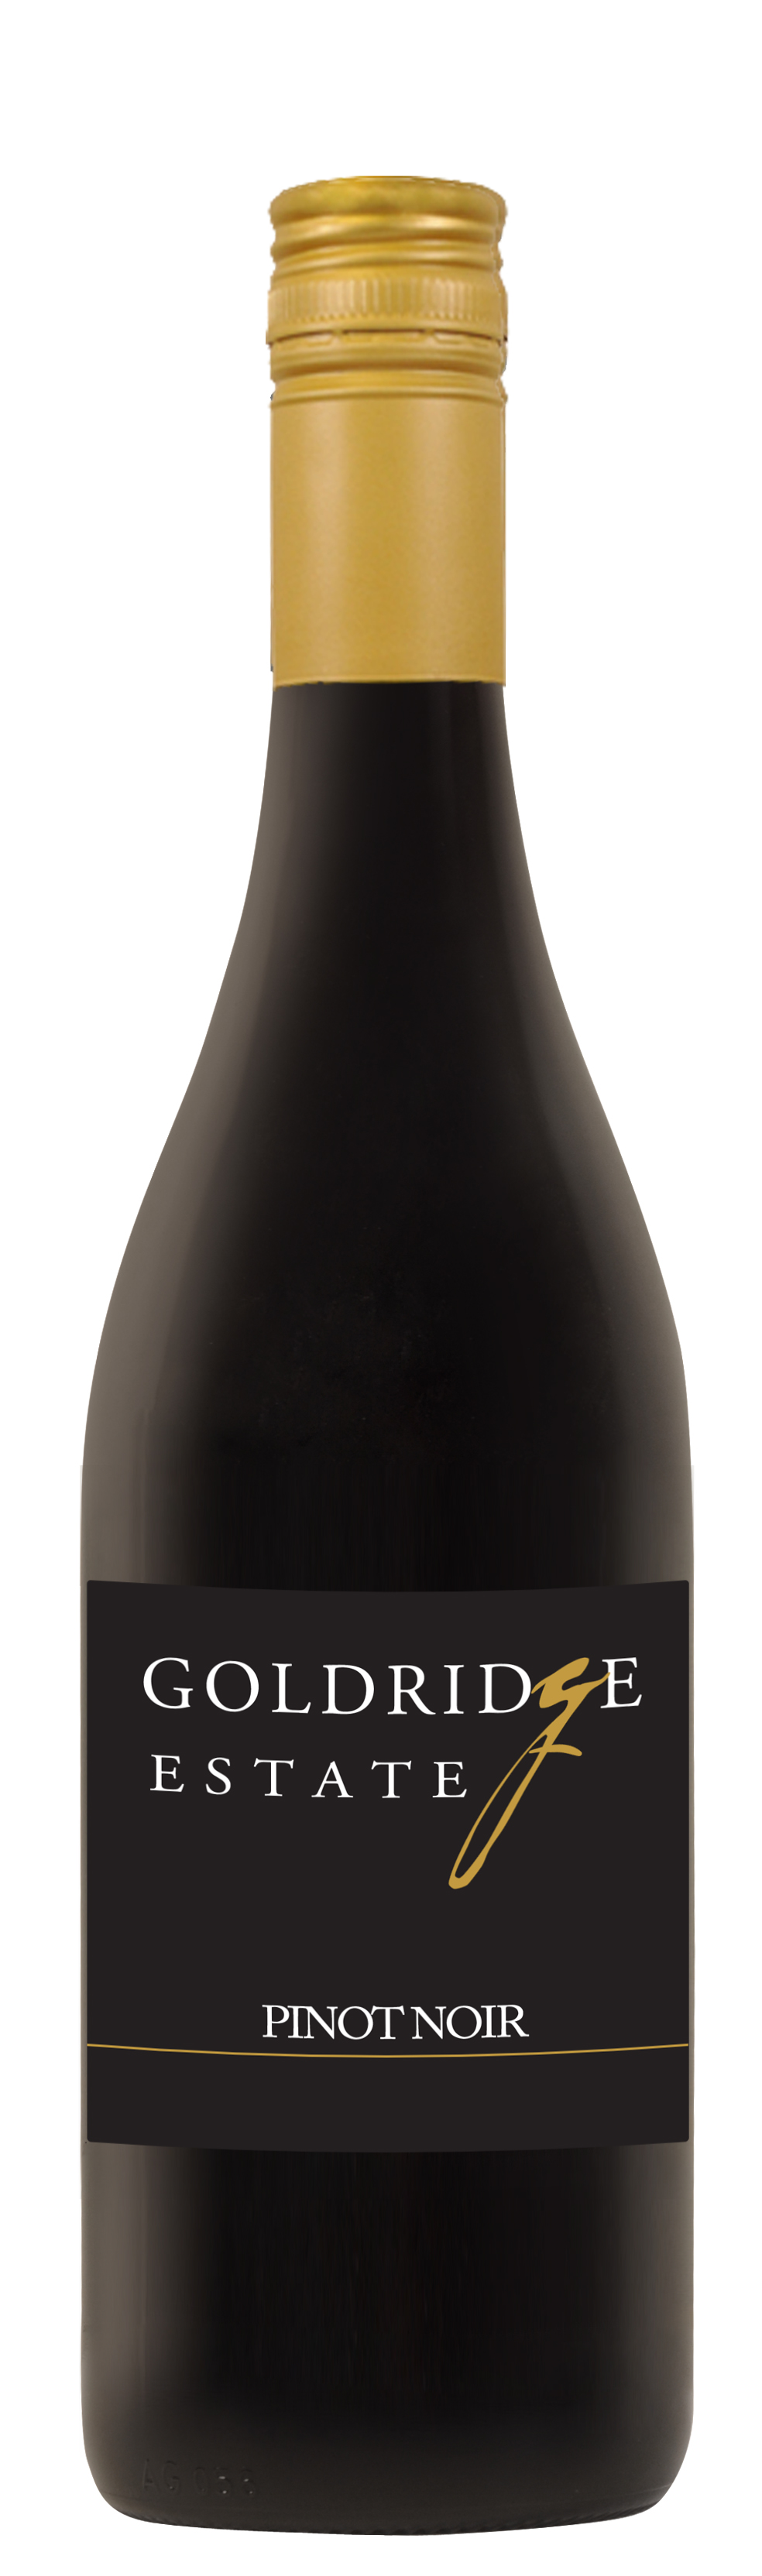 GOLDRIDGE ESTATE PINOT NOIR